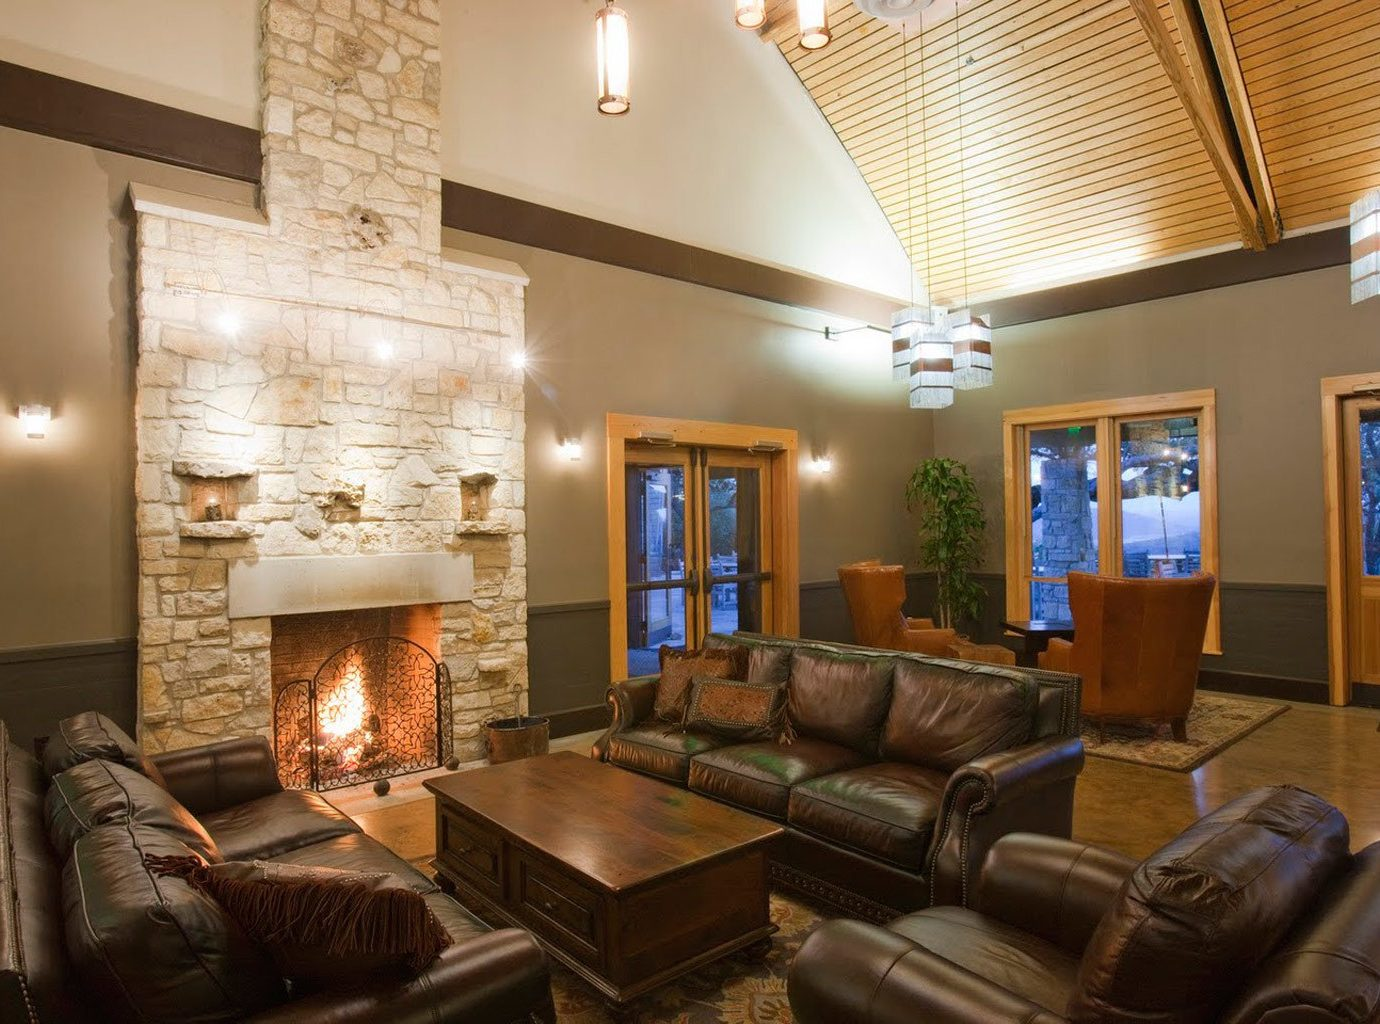 All-Inclusive Resorts Cultural Fireplace Hotels Lobby Lounge Resort Romance Rustic Wellness indoor Living sofa ceiling room wall living room property estate home interior design real estate condominium furniture Suite cottage